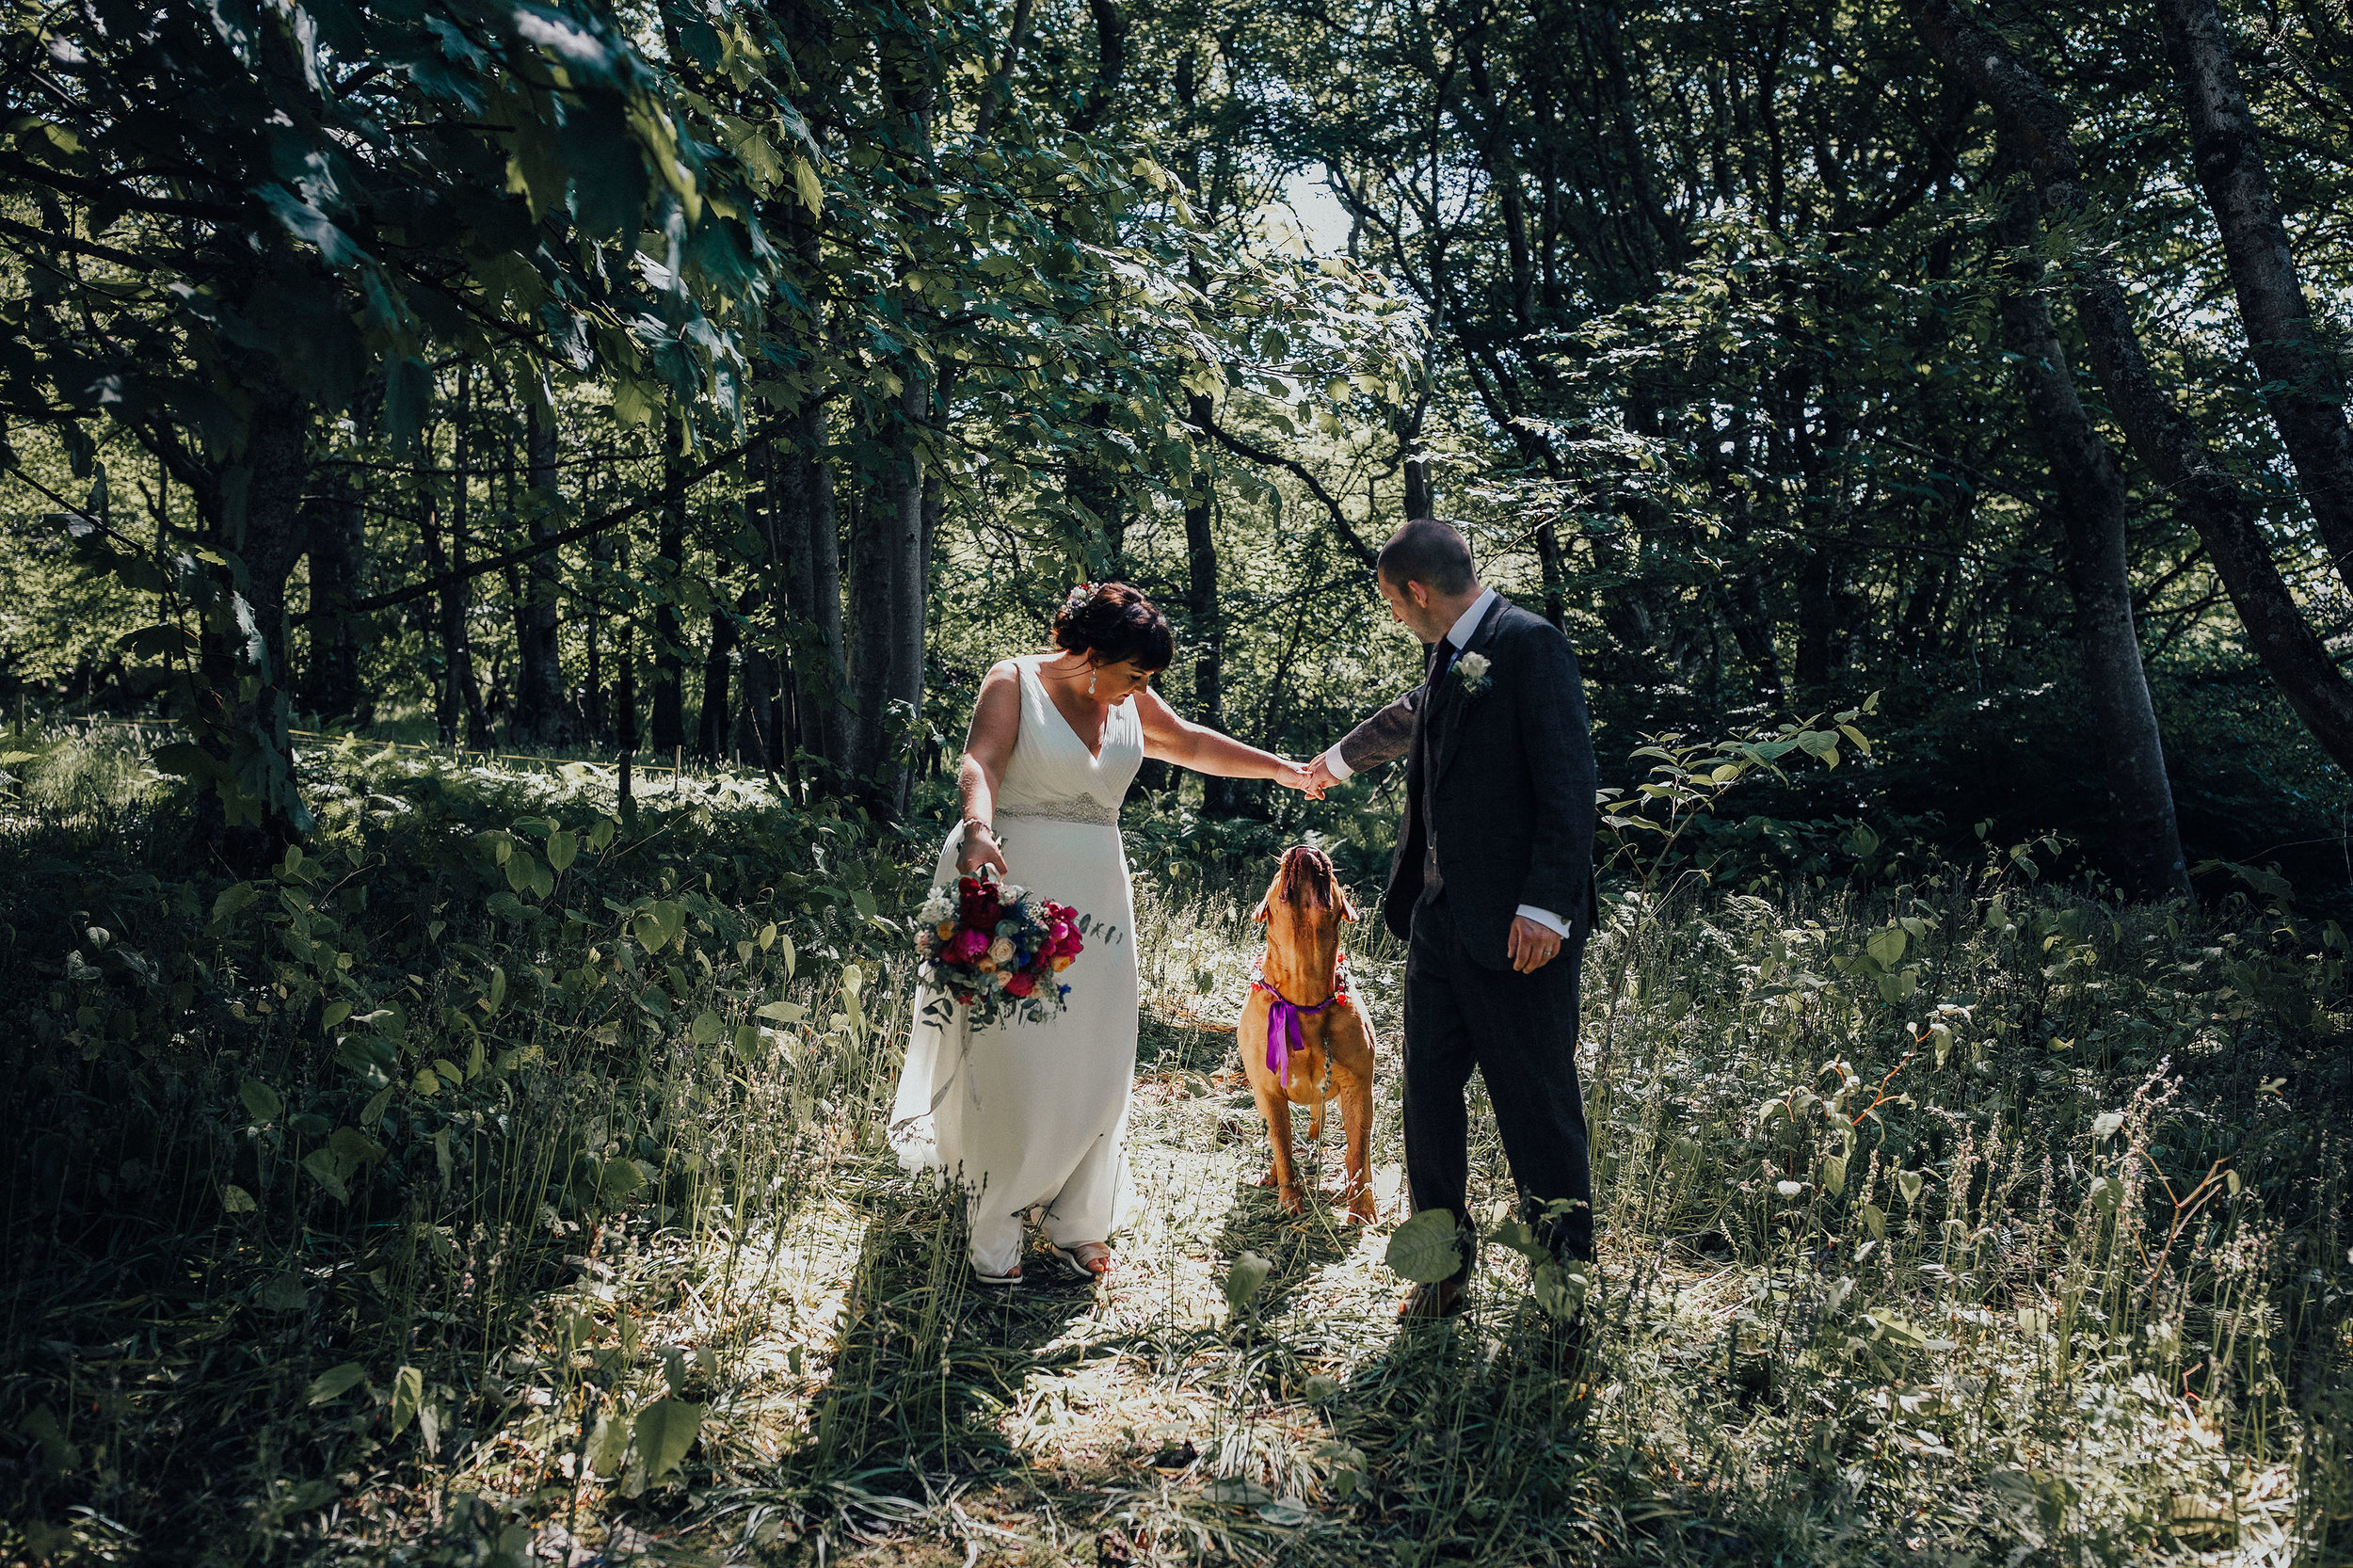 SCOTTISH_ELOPEMENT_PHOTOGRAPHER_PJ_PHILLIPS_PHOTOGRAPHY_91.jpg